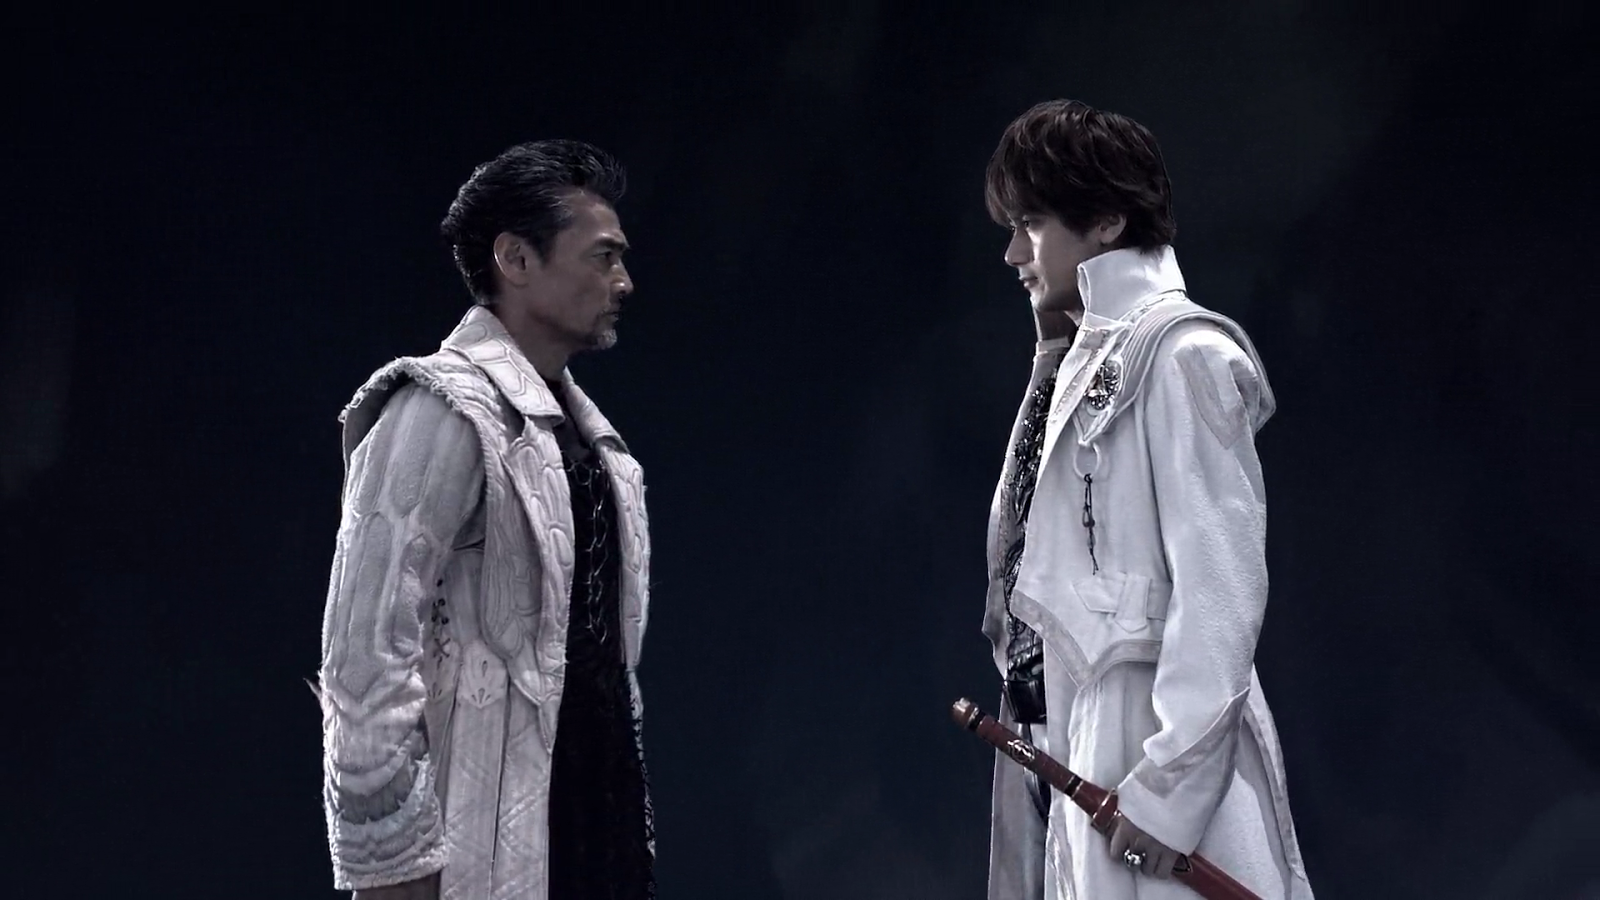 Kouga meets his deceased father once again